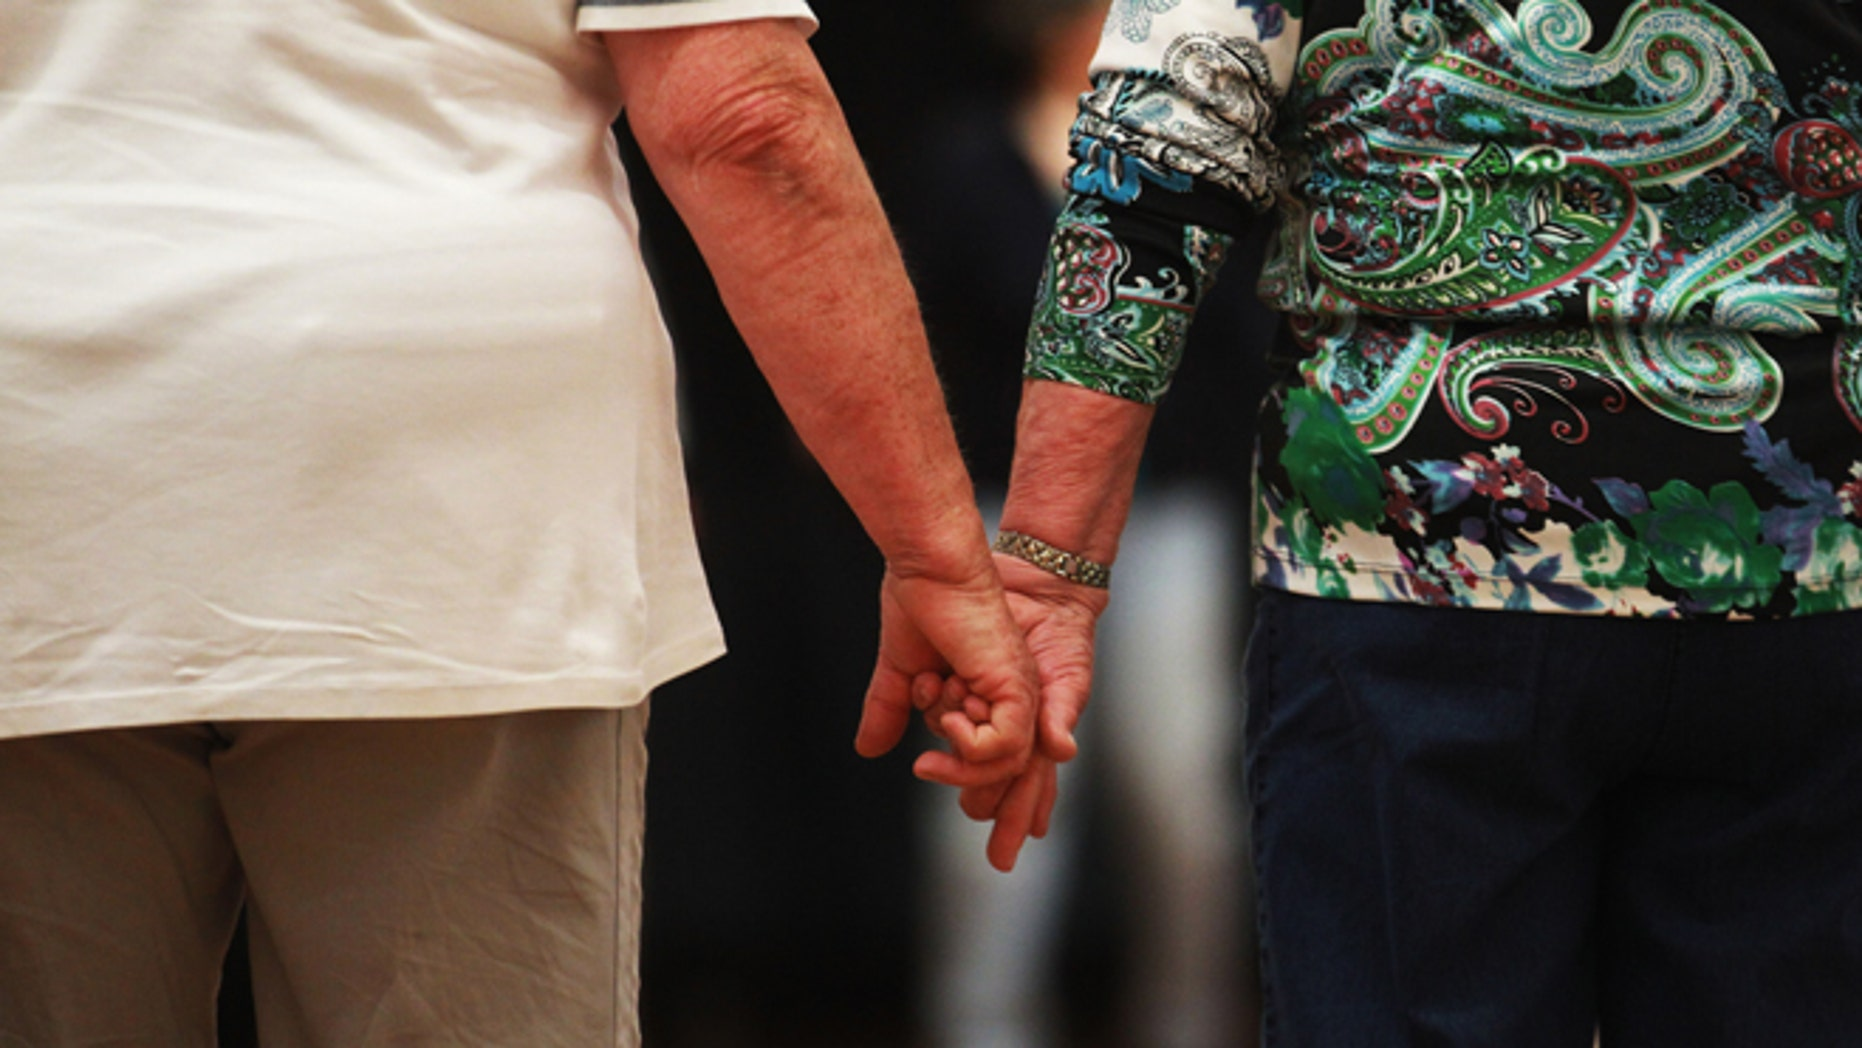 """HAMBURG, GERMANY - MAY 03:  An elderly couple hold hands at a trade fair at the """"Seniorentag 2012"""" senior citizens convention on May 3, 2012 in Hamburg, Germany. The three-day long convention caters specifically to the needs of elderly people, who in Germany, as in the rest of Europe, are becoming an increasingly higher portion of the overall population. Europe as a whole, through its low birth rates and improving health care, is undergoing a demographic shift that has far-reaching consequences for labor markets, public policy planning and government budgets.  (Photo by Joern Pollex/Getty Images)"""